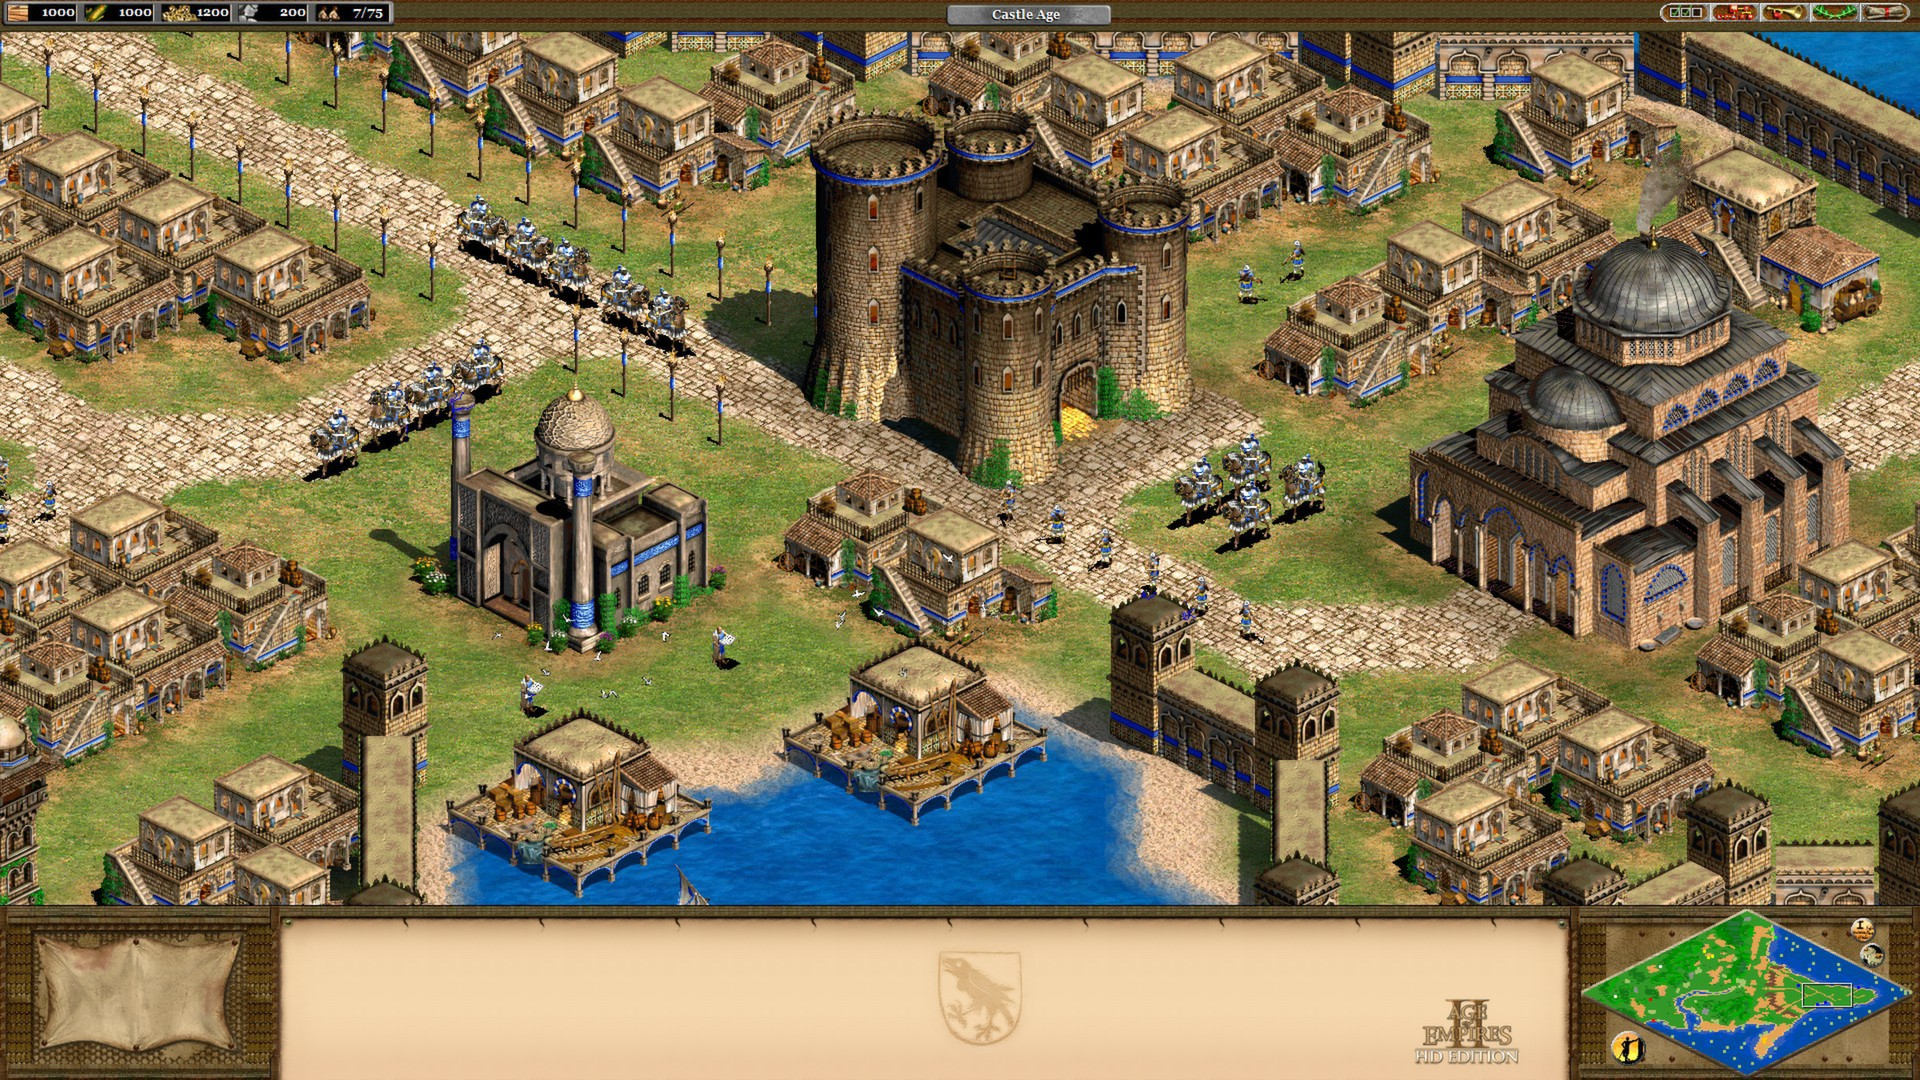 [IMG]http://im.tiscali.cz/games/2013/03/07/311419-age-of-empires-ii-hd-edition-1920x1080.jpg[/IMG]